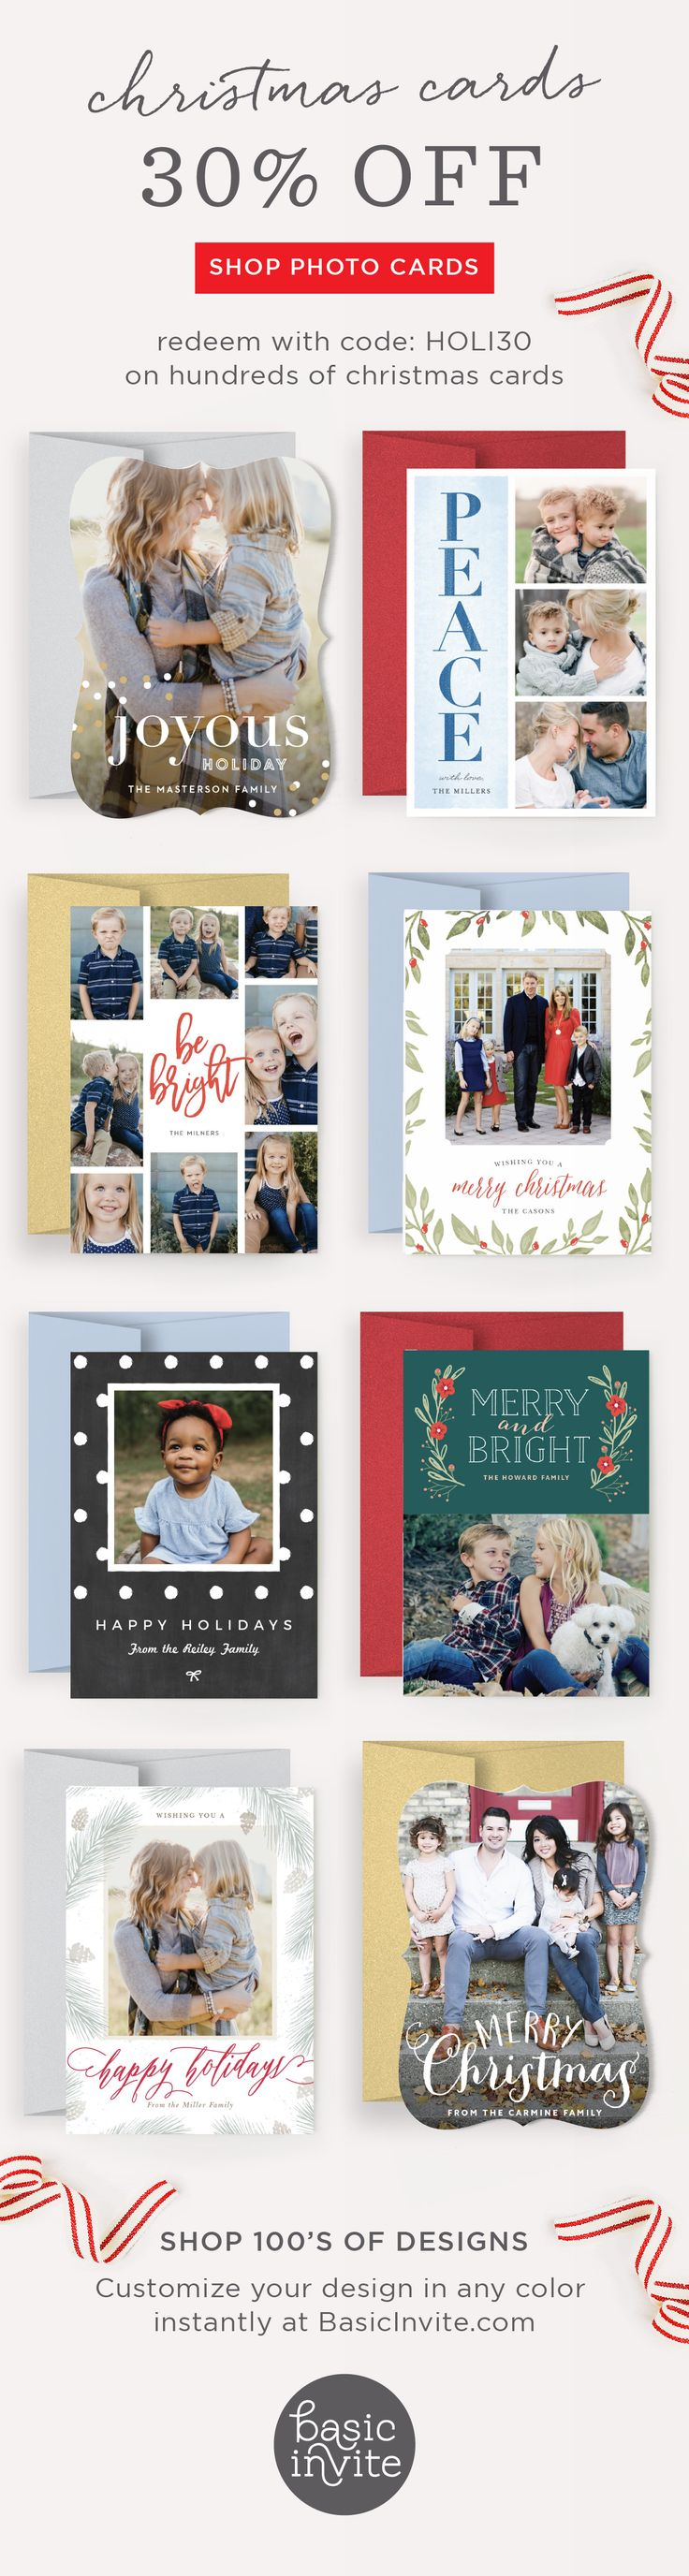 23 Best Christmas Card Ideas Images On Pinterest Christmas Cards